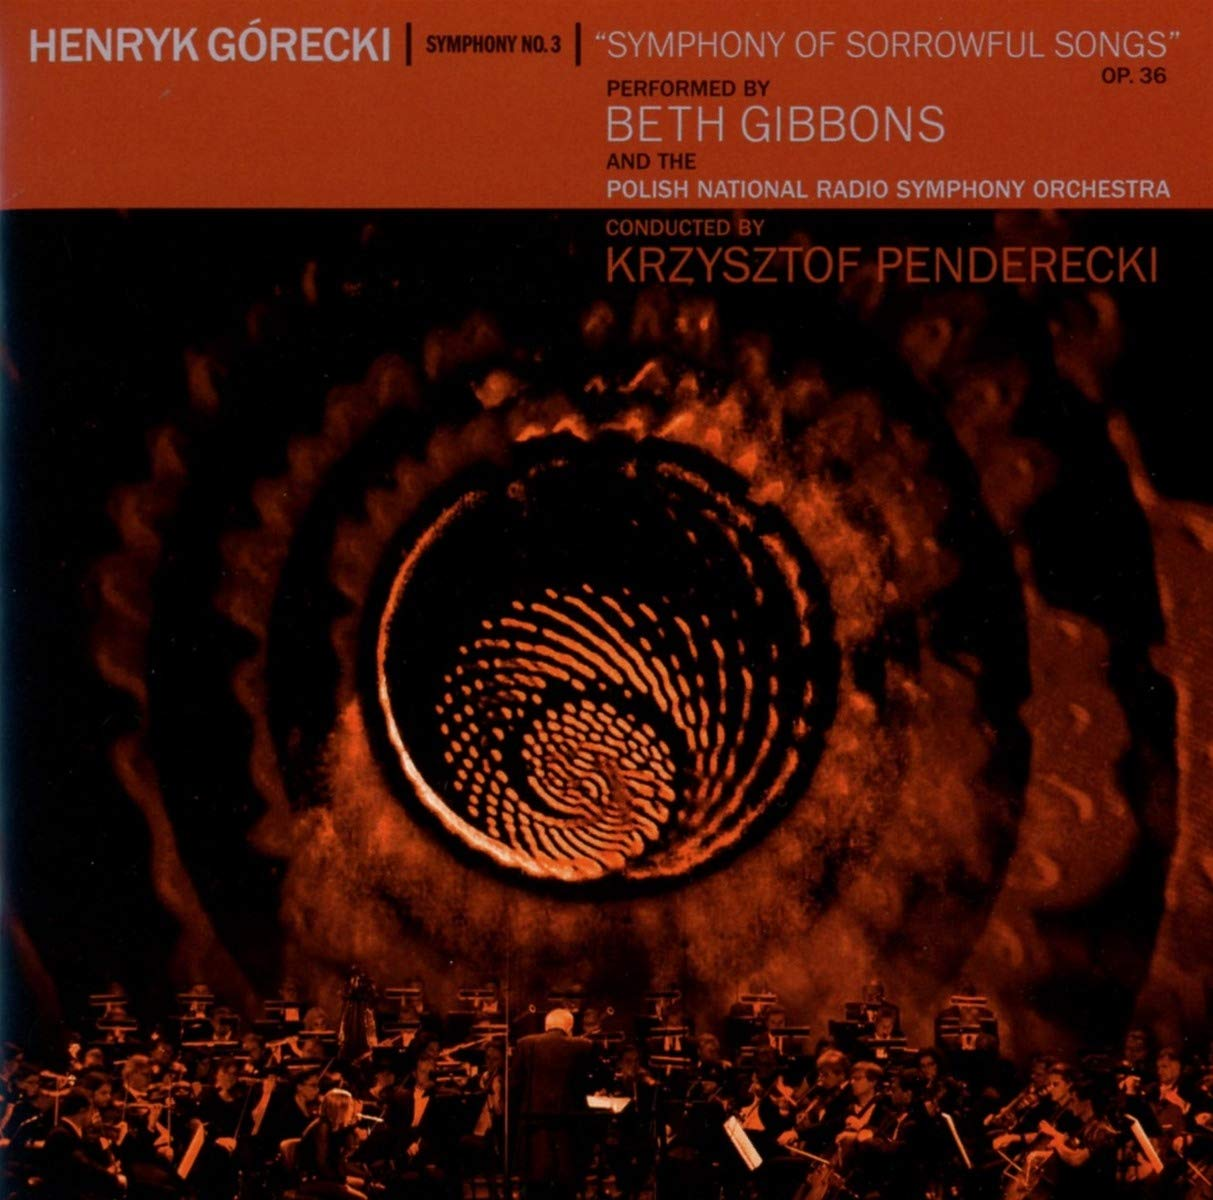 """* Henryk Gorecki's """"Symphony no. 3 (Symphony of Sorrowful Songs)"""" by Portishead's vocalist,  BETH GIBBONS , recorded with Polish National Radio Symphonic Orchestra conducted by Krzysztof Penderecki. It's a rare, special and monumental affair, the one that expands beyond the borders of classical and modern music. It definitely requires a full attention listen, and not one but many. Gibbons' contralto, which is one of the most recognizable voices in popular music, takes on the soprano parts of Górecki's piece. As that wasn't challenging enough Beth adds singing in Polish to that task. The results are incredible to say the least. On the side note, Penderecki is not a stranger when it comes collaborating with British pop experimentalists. Previously collaborated with Radiohead's Jonny Greenwood and Aphex Twin."""